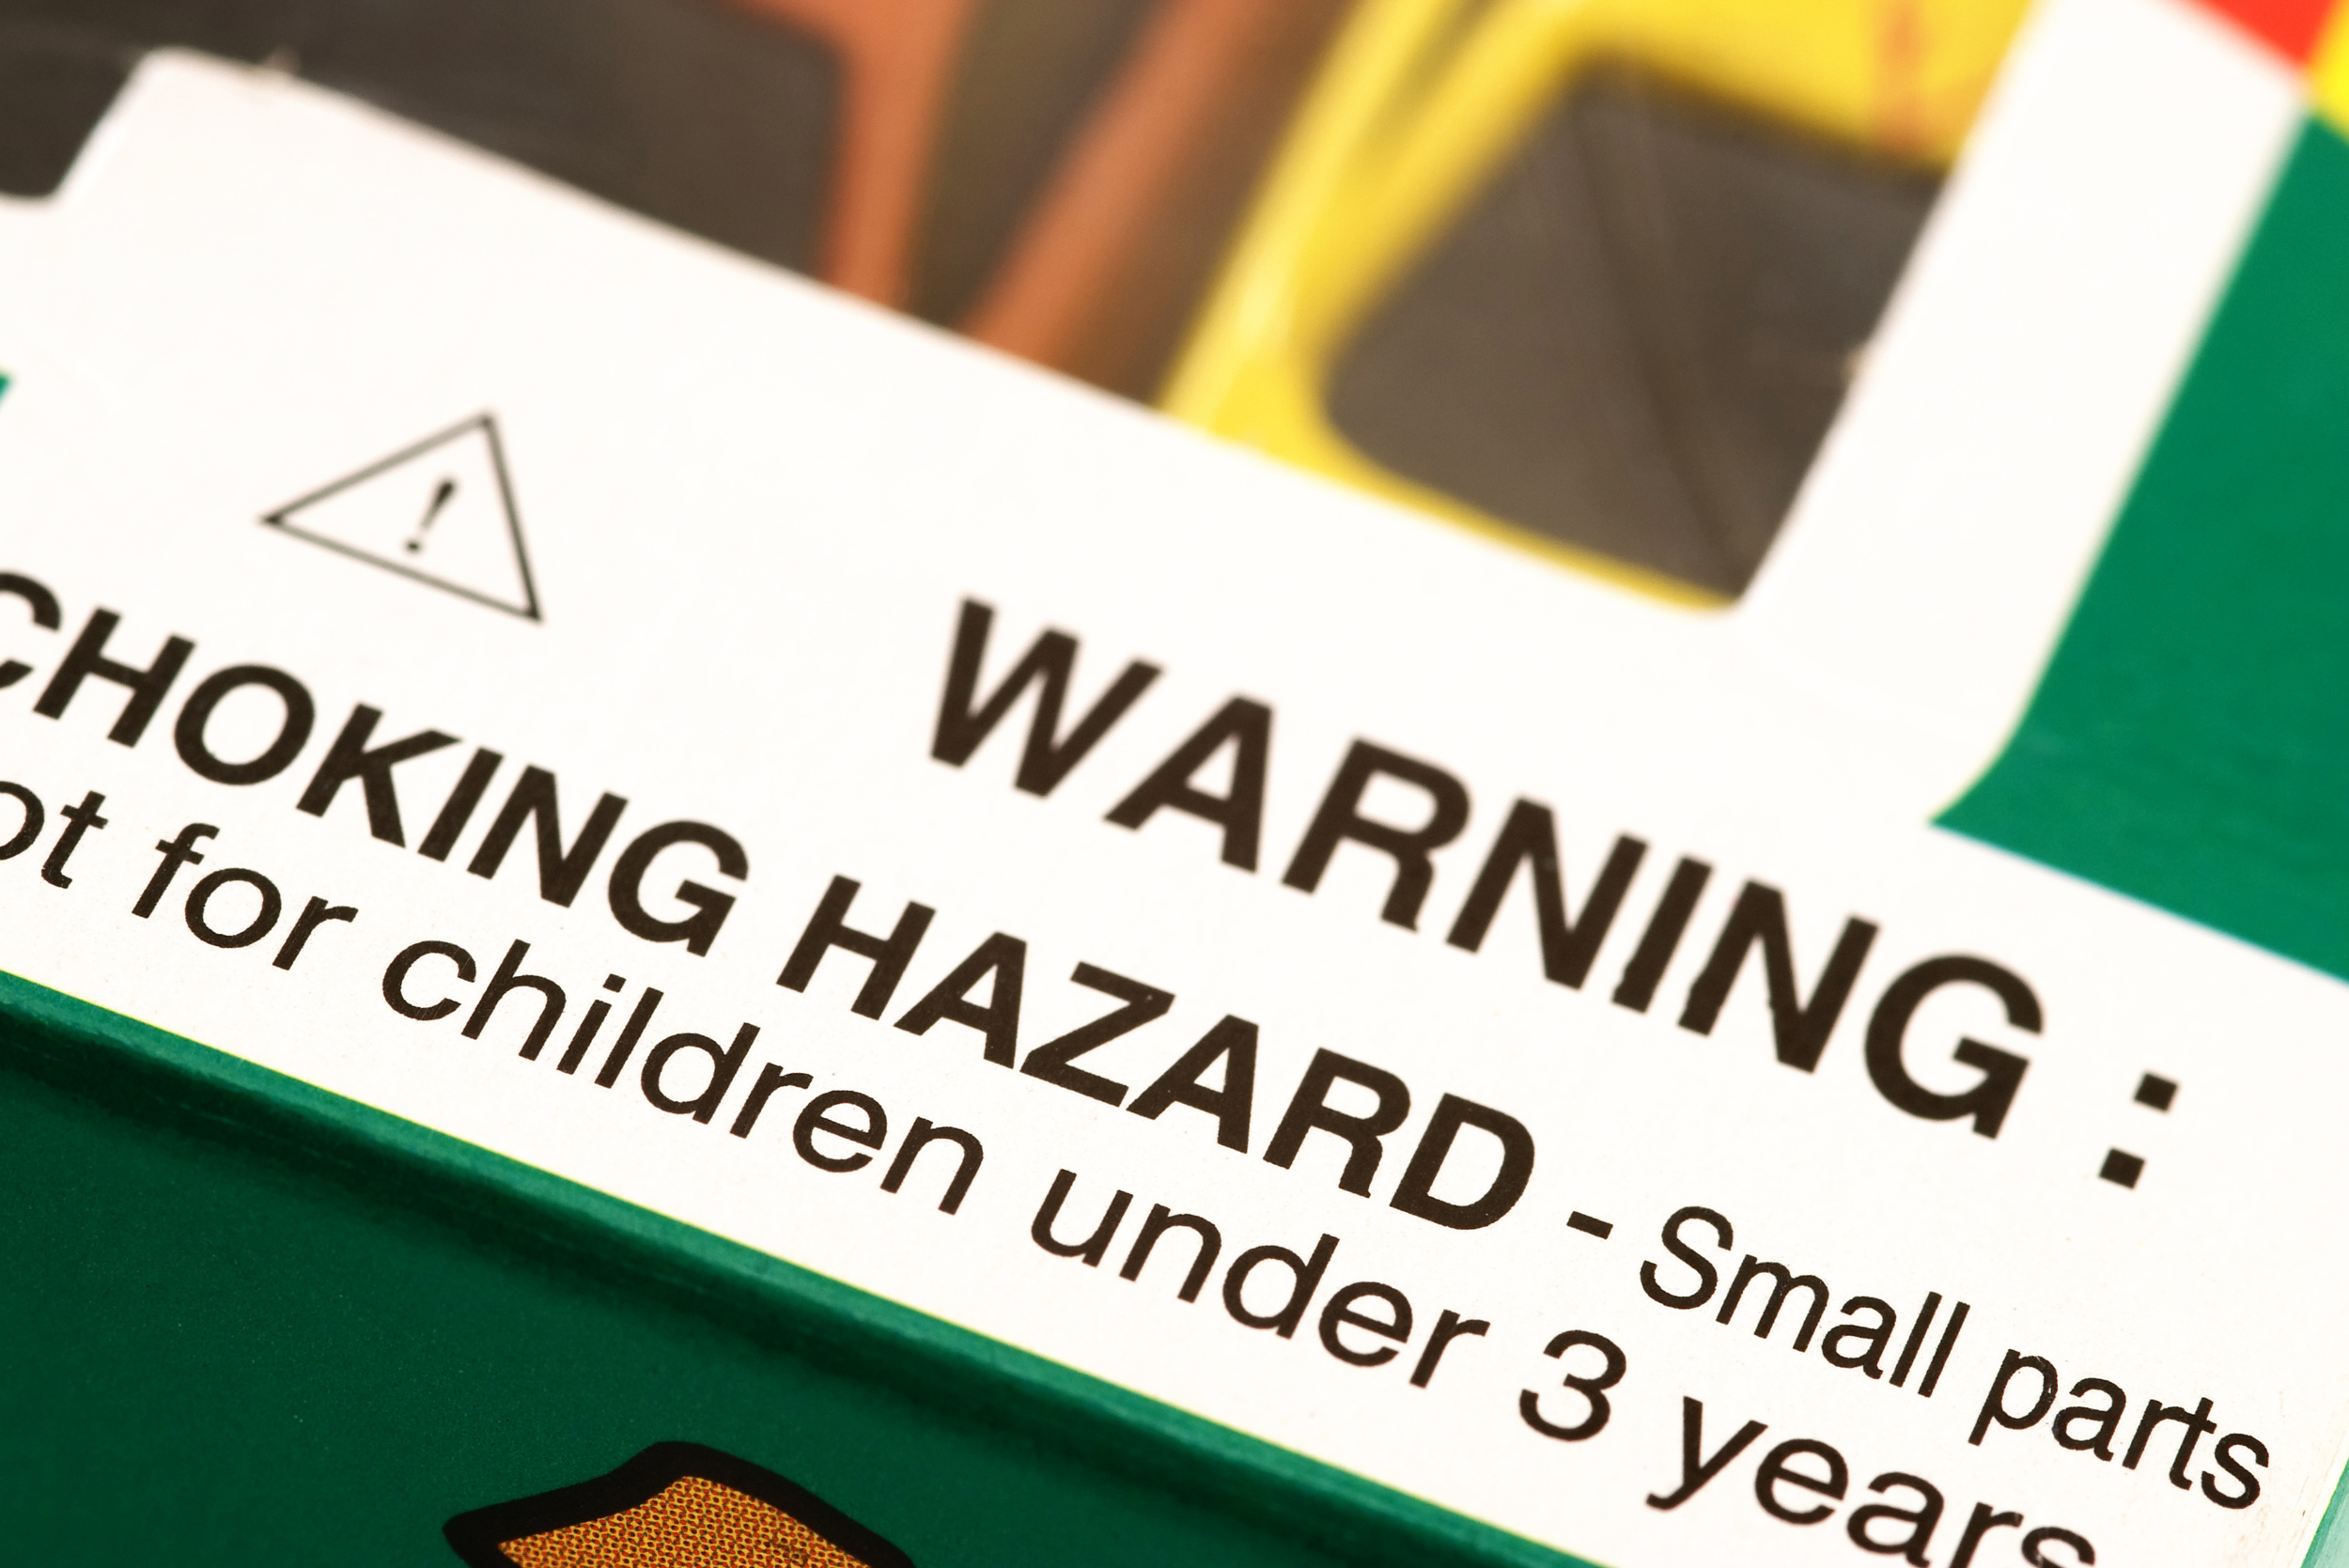 Small parts warning labeling for product packaging.